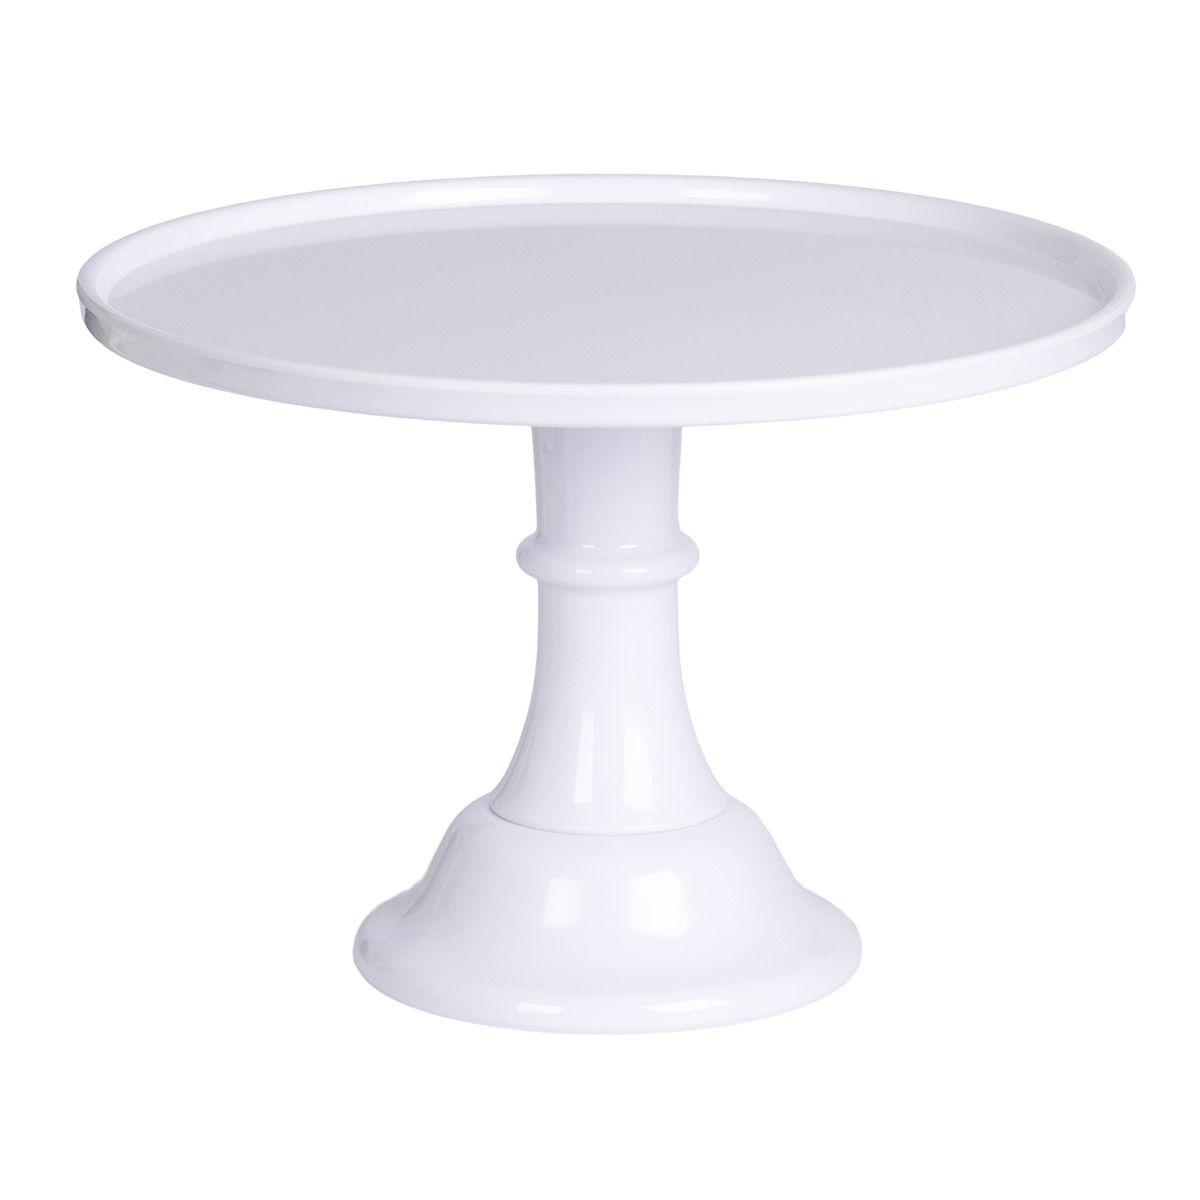 "ALLC Cake Stand Large Classic White (11.9"")"